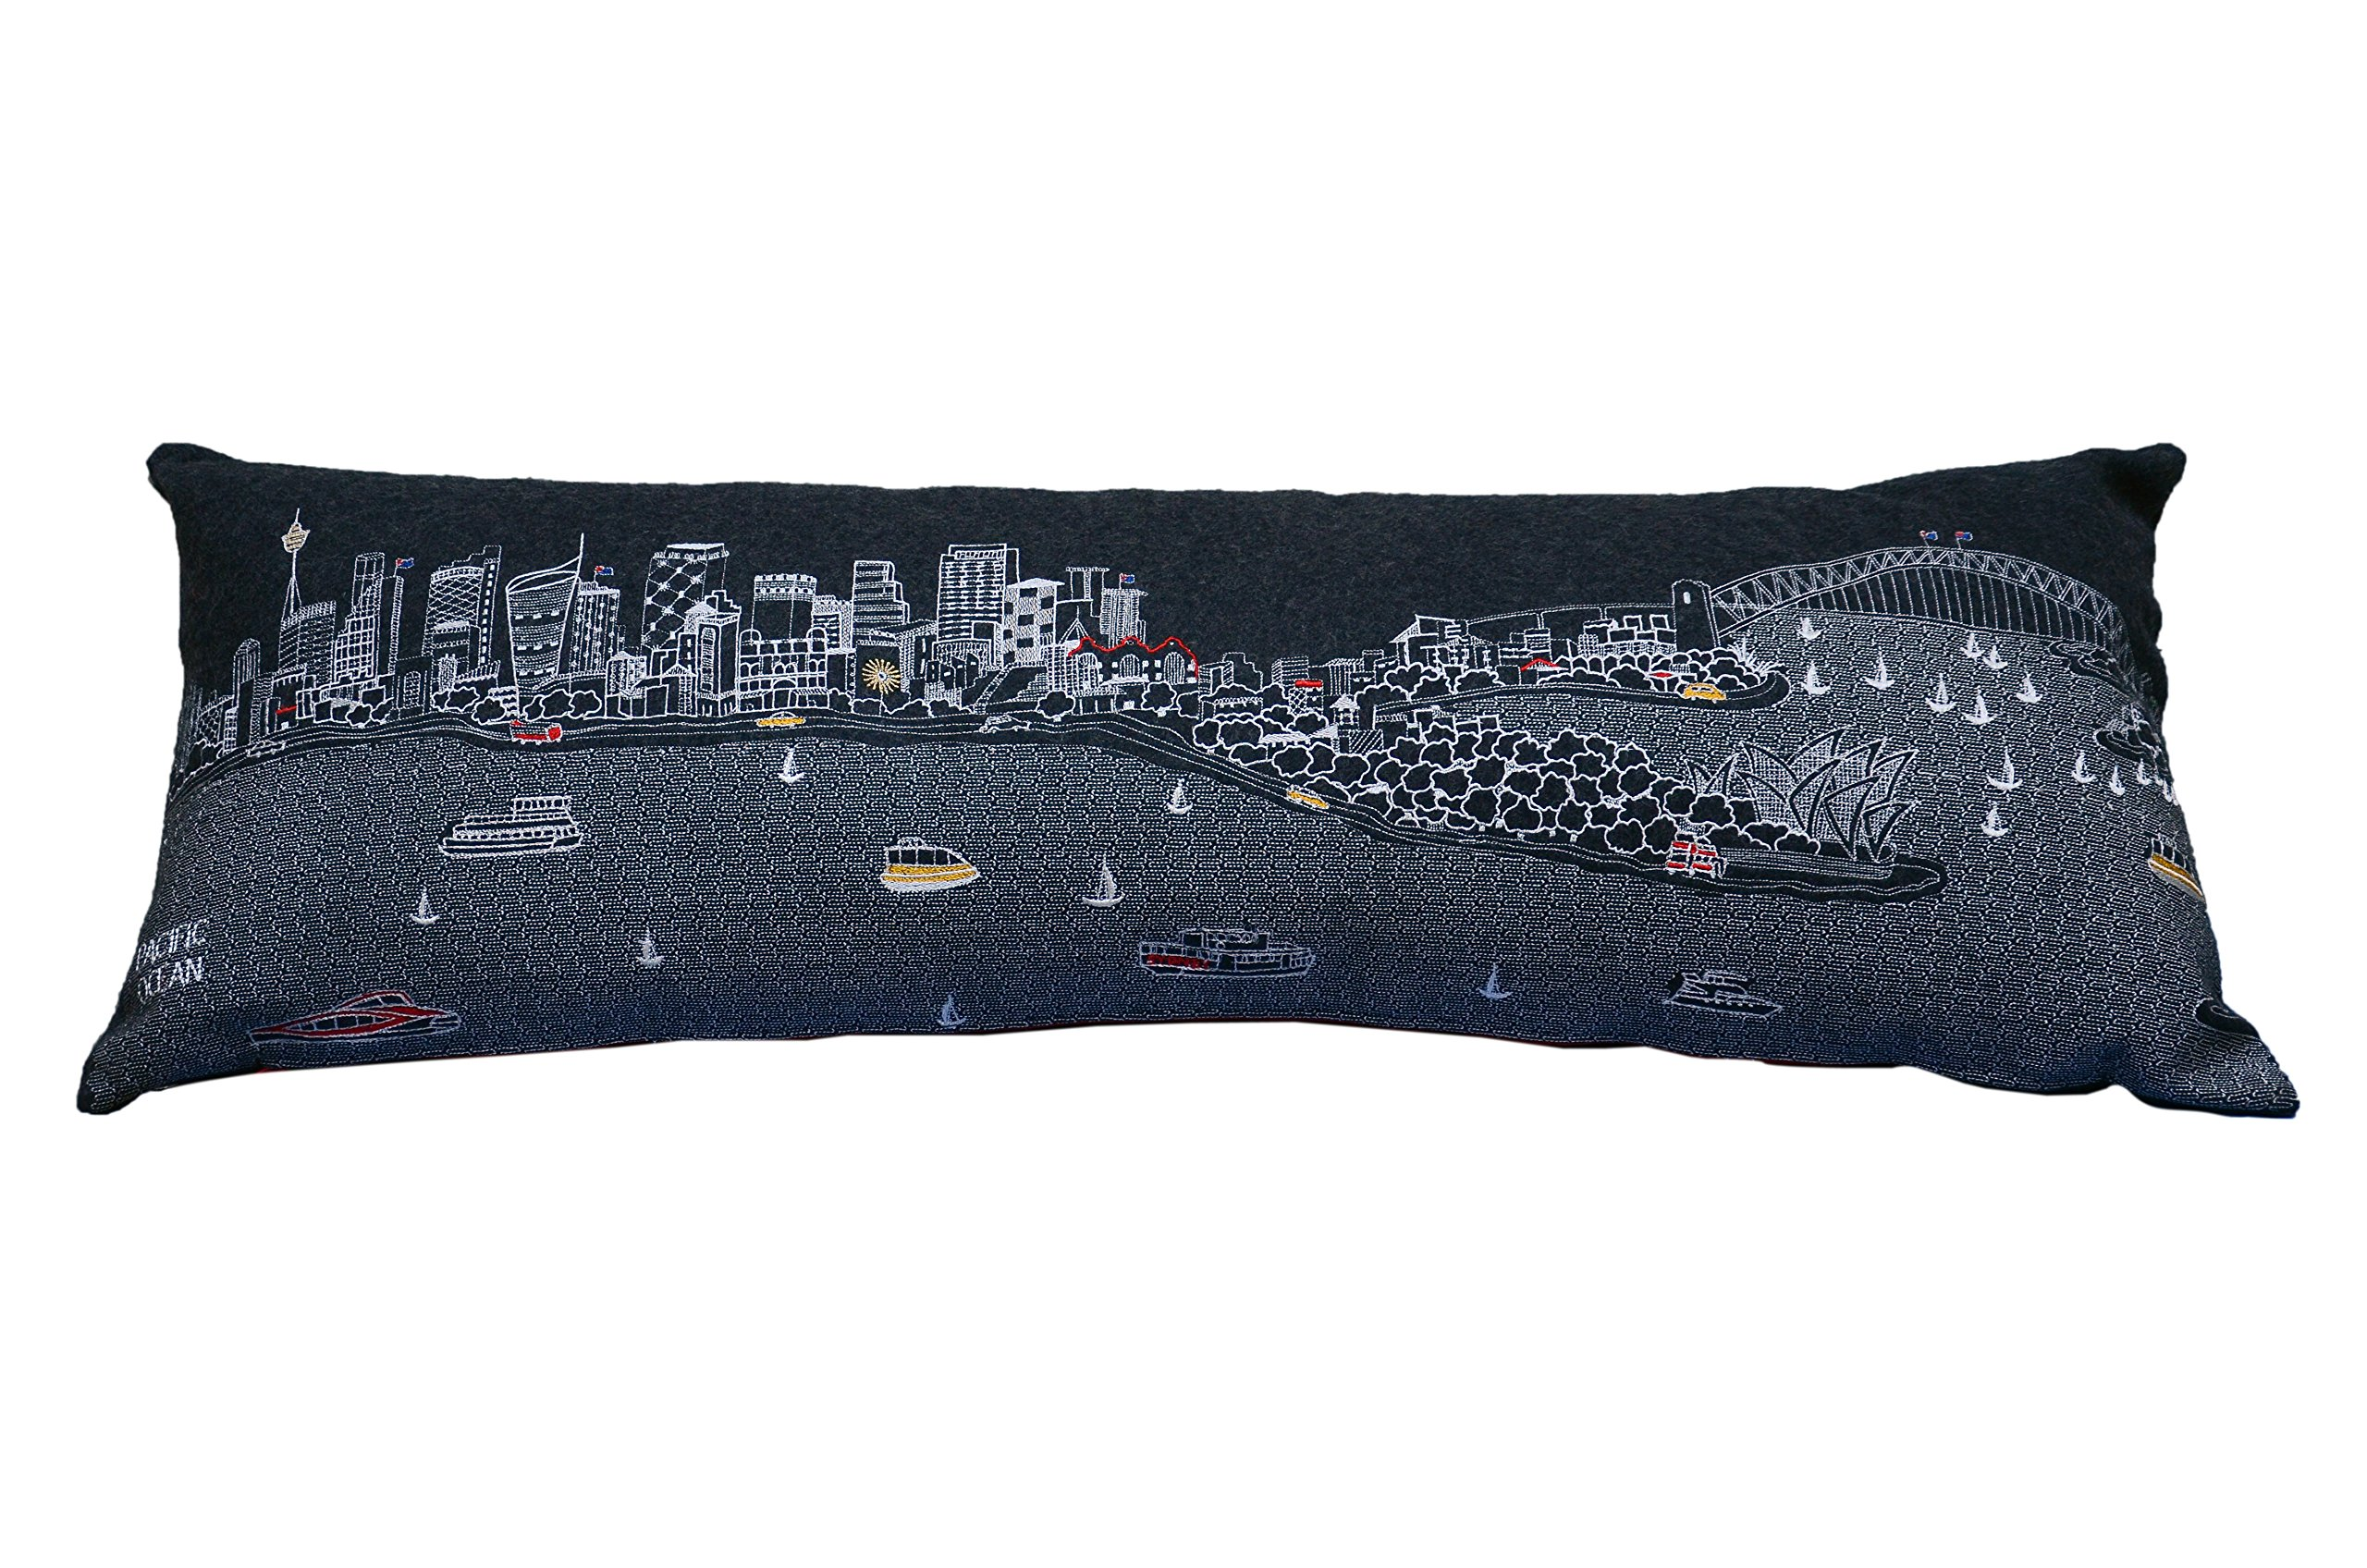 Beyond Cushions Polyester Throw Pillows Beyond Cushions Sydney Australia Night Skyline King Size Embroidered Pillow 46 X 14 X 5 Inches Black Model # SYD-NGT-KNG